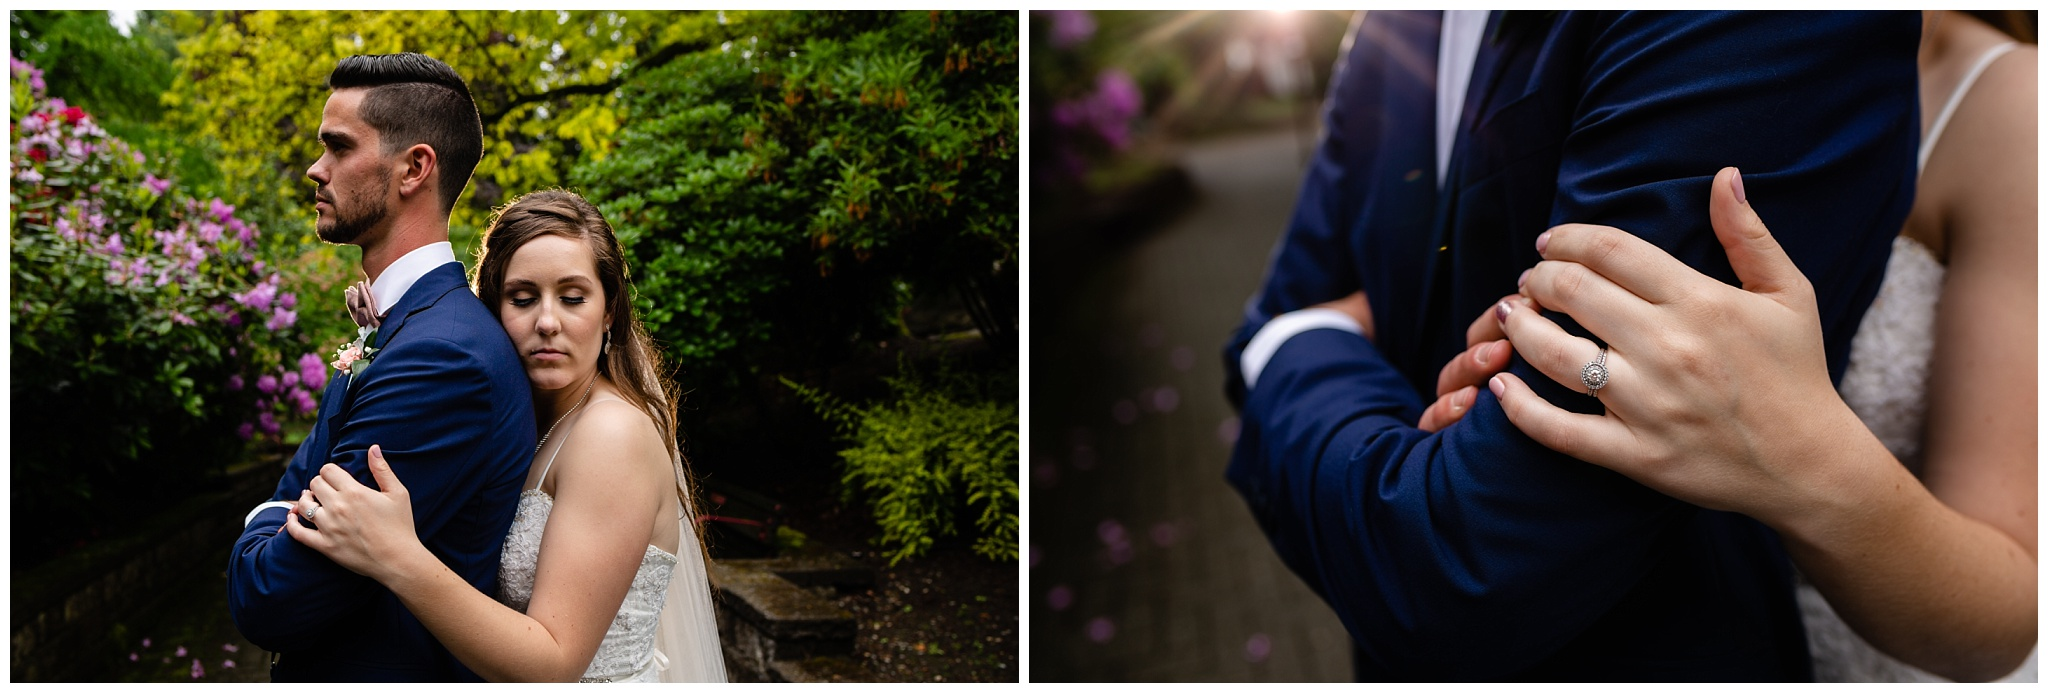 Cloverdale Canadian Reformed Church Wedding Sendall Garden Bride Groom Portraits Christian Couples Best Photographer in Langley Surrey British Columbia_0047.jpg